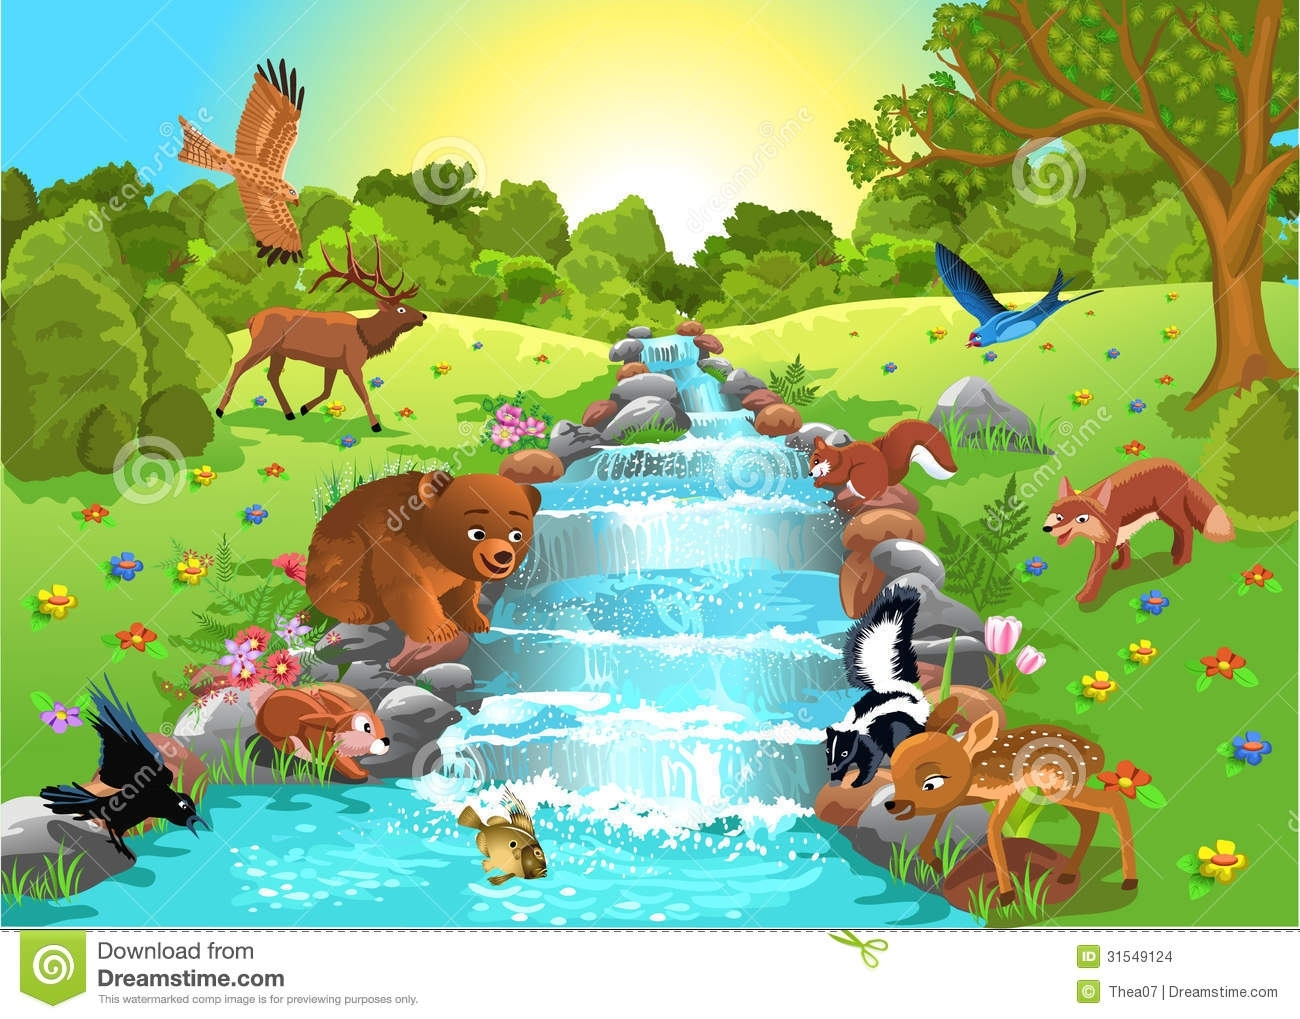 Creature Drinking Water Clip Art Pictures to Pin on Pinterest.